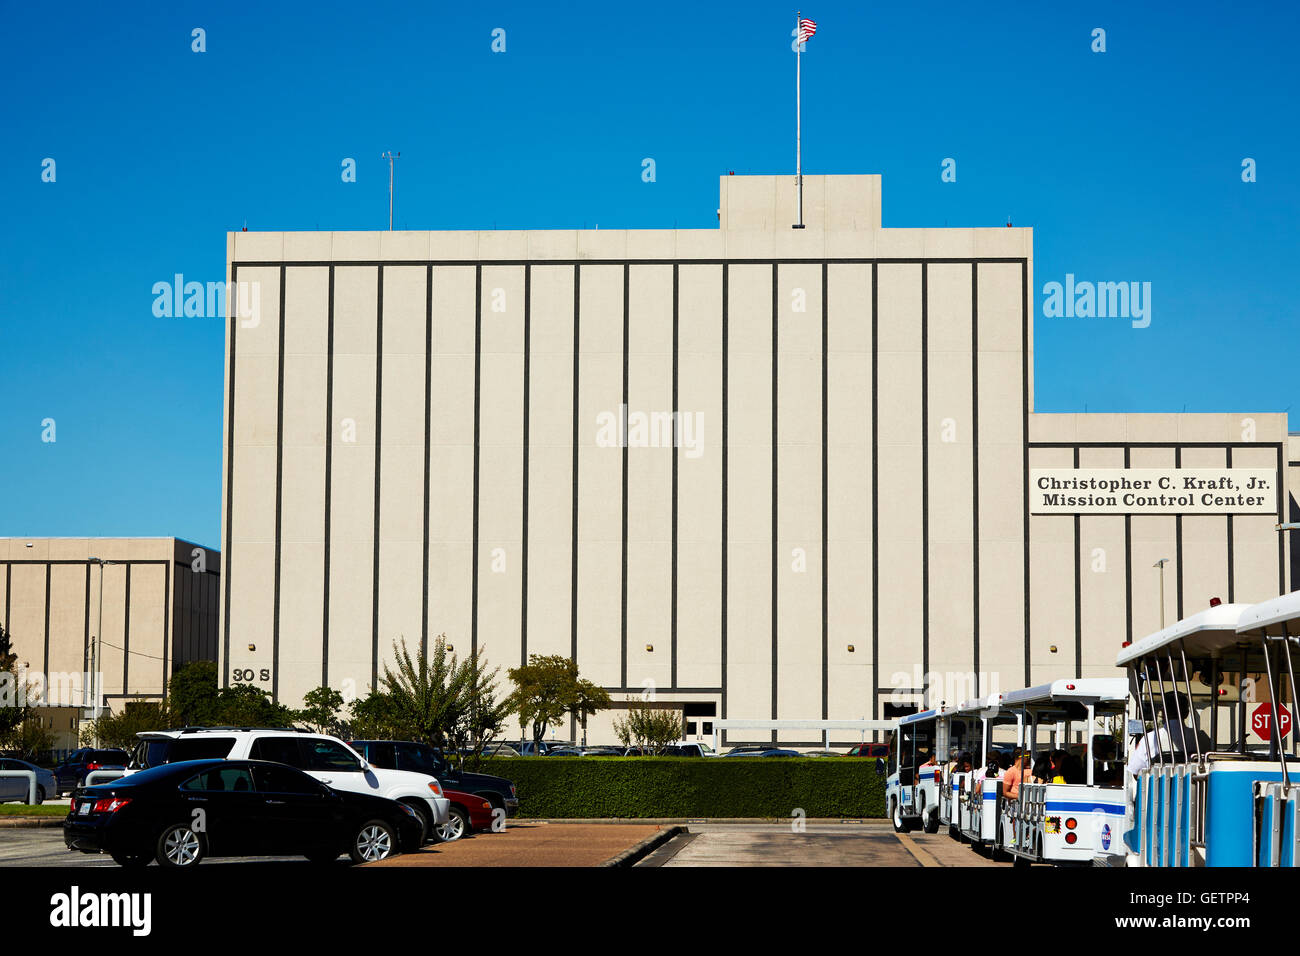 NASA Mission Control building in Houston. - Stock Image